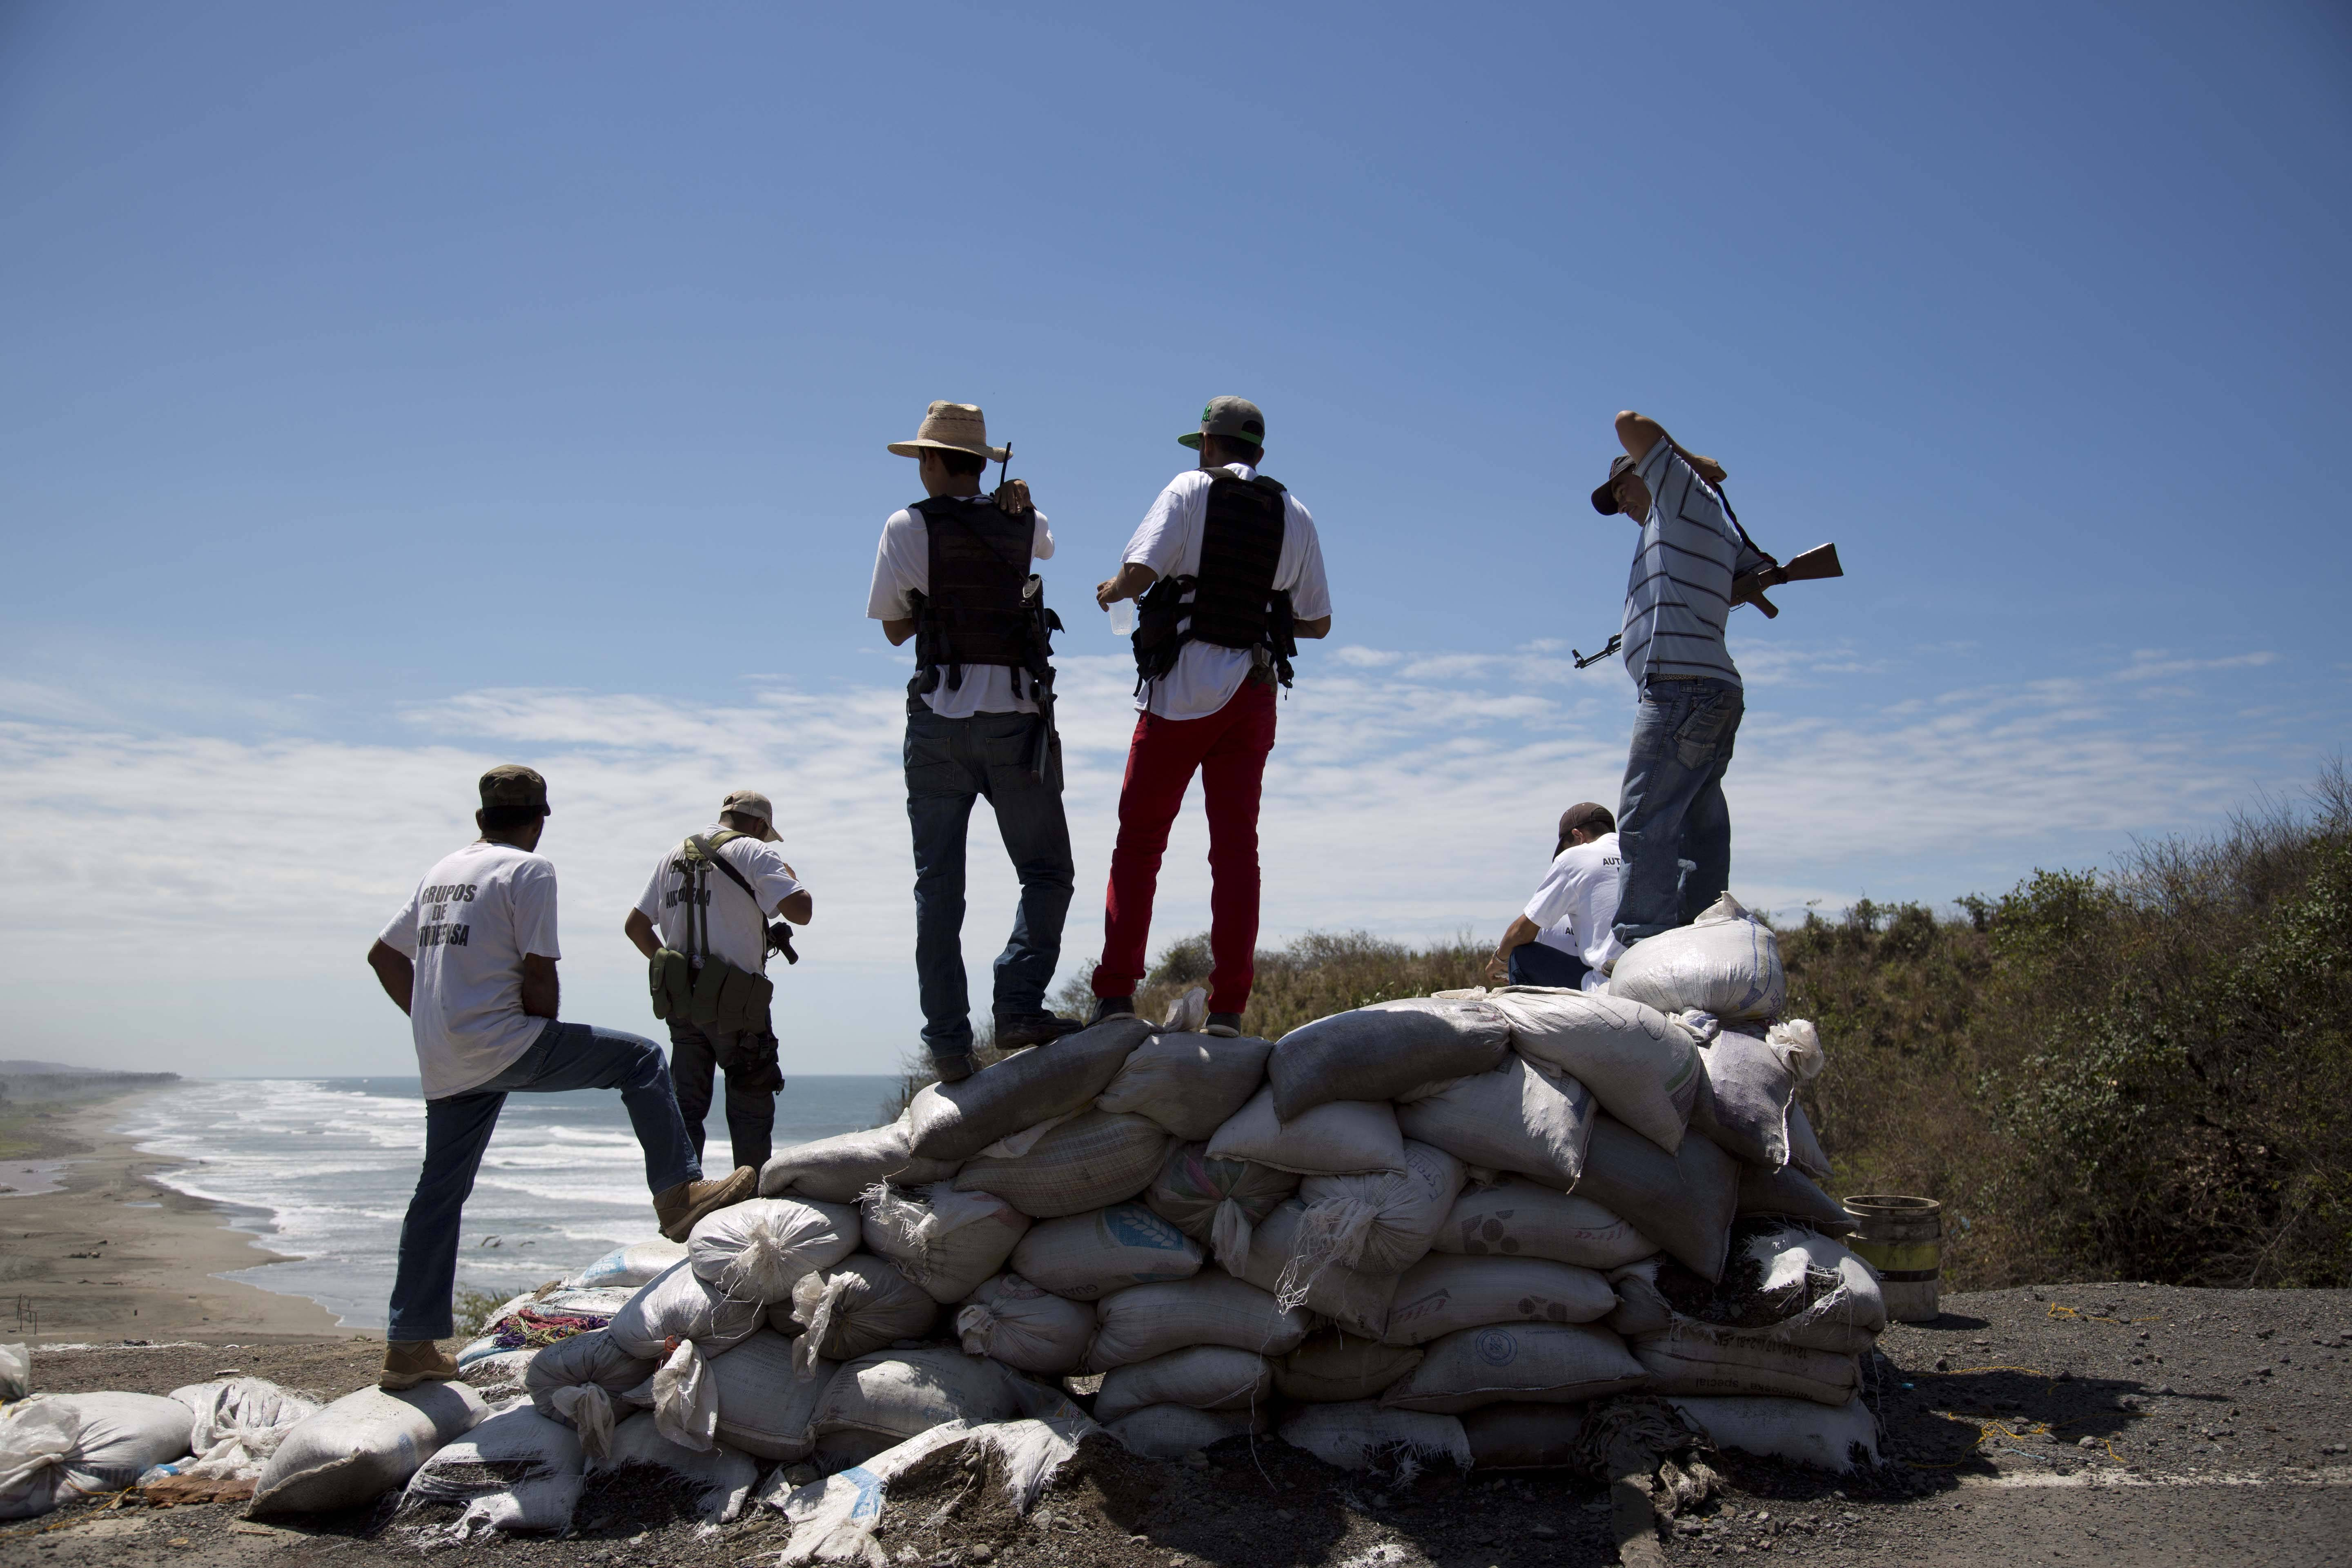 Armed men belonging to the Self-Defense Council of Michoacan look out toward the sea as they guard a checkpoint set up by the self-defense group in Chuquiapan on the outskirts of the seaport of Lazaro Cardenas in western Mexico, Friday, May 9. Mexico's government plans on Saturday to begin demobilizing the vigilante movement that largely expelled the Knights Templar cartel when state and local authorities couldn't. But tension remained on Friday in the coastal part of the state outside the port of Lazaro Cardenas, where some self-defense groups plan to continue as they are, defending their territory without registering their arms.